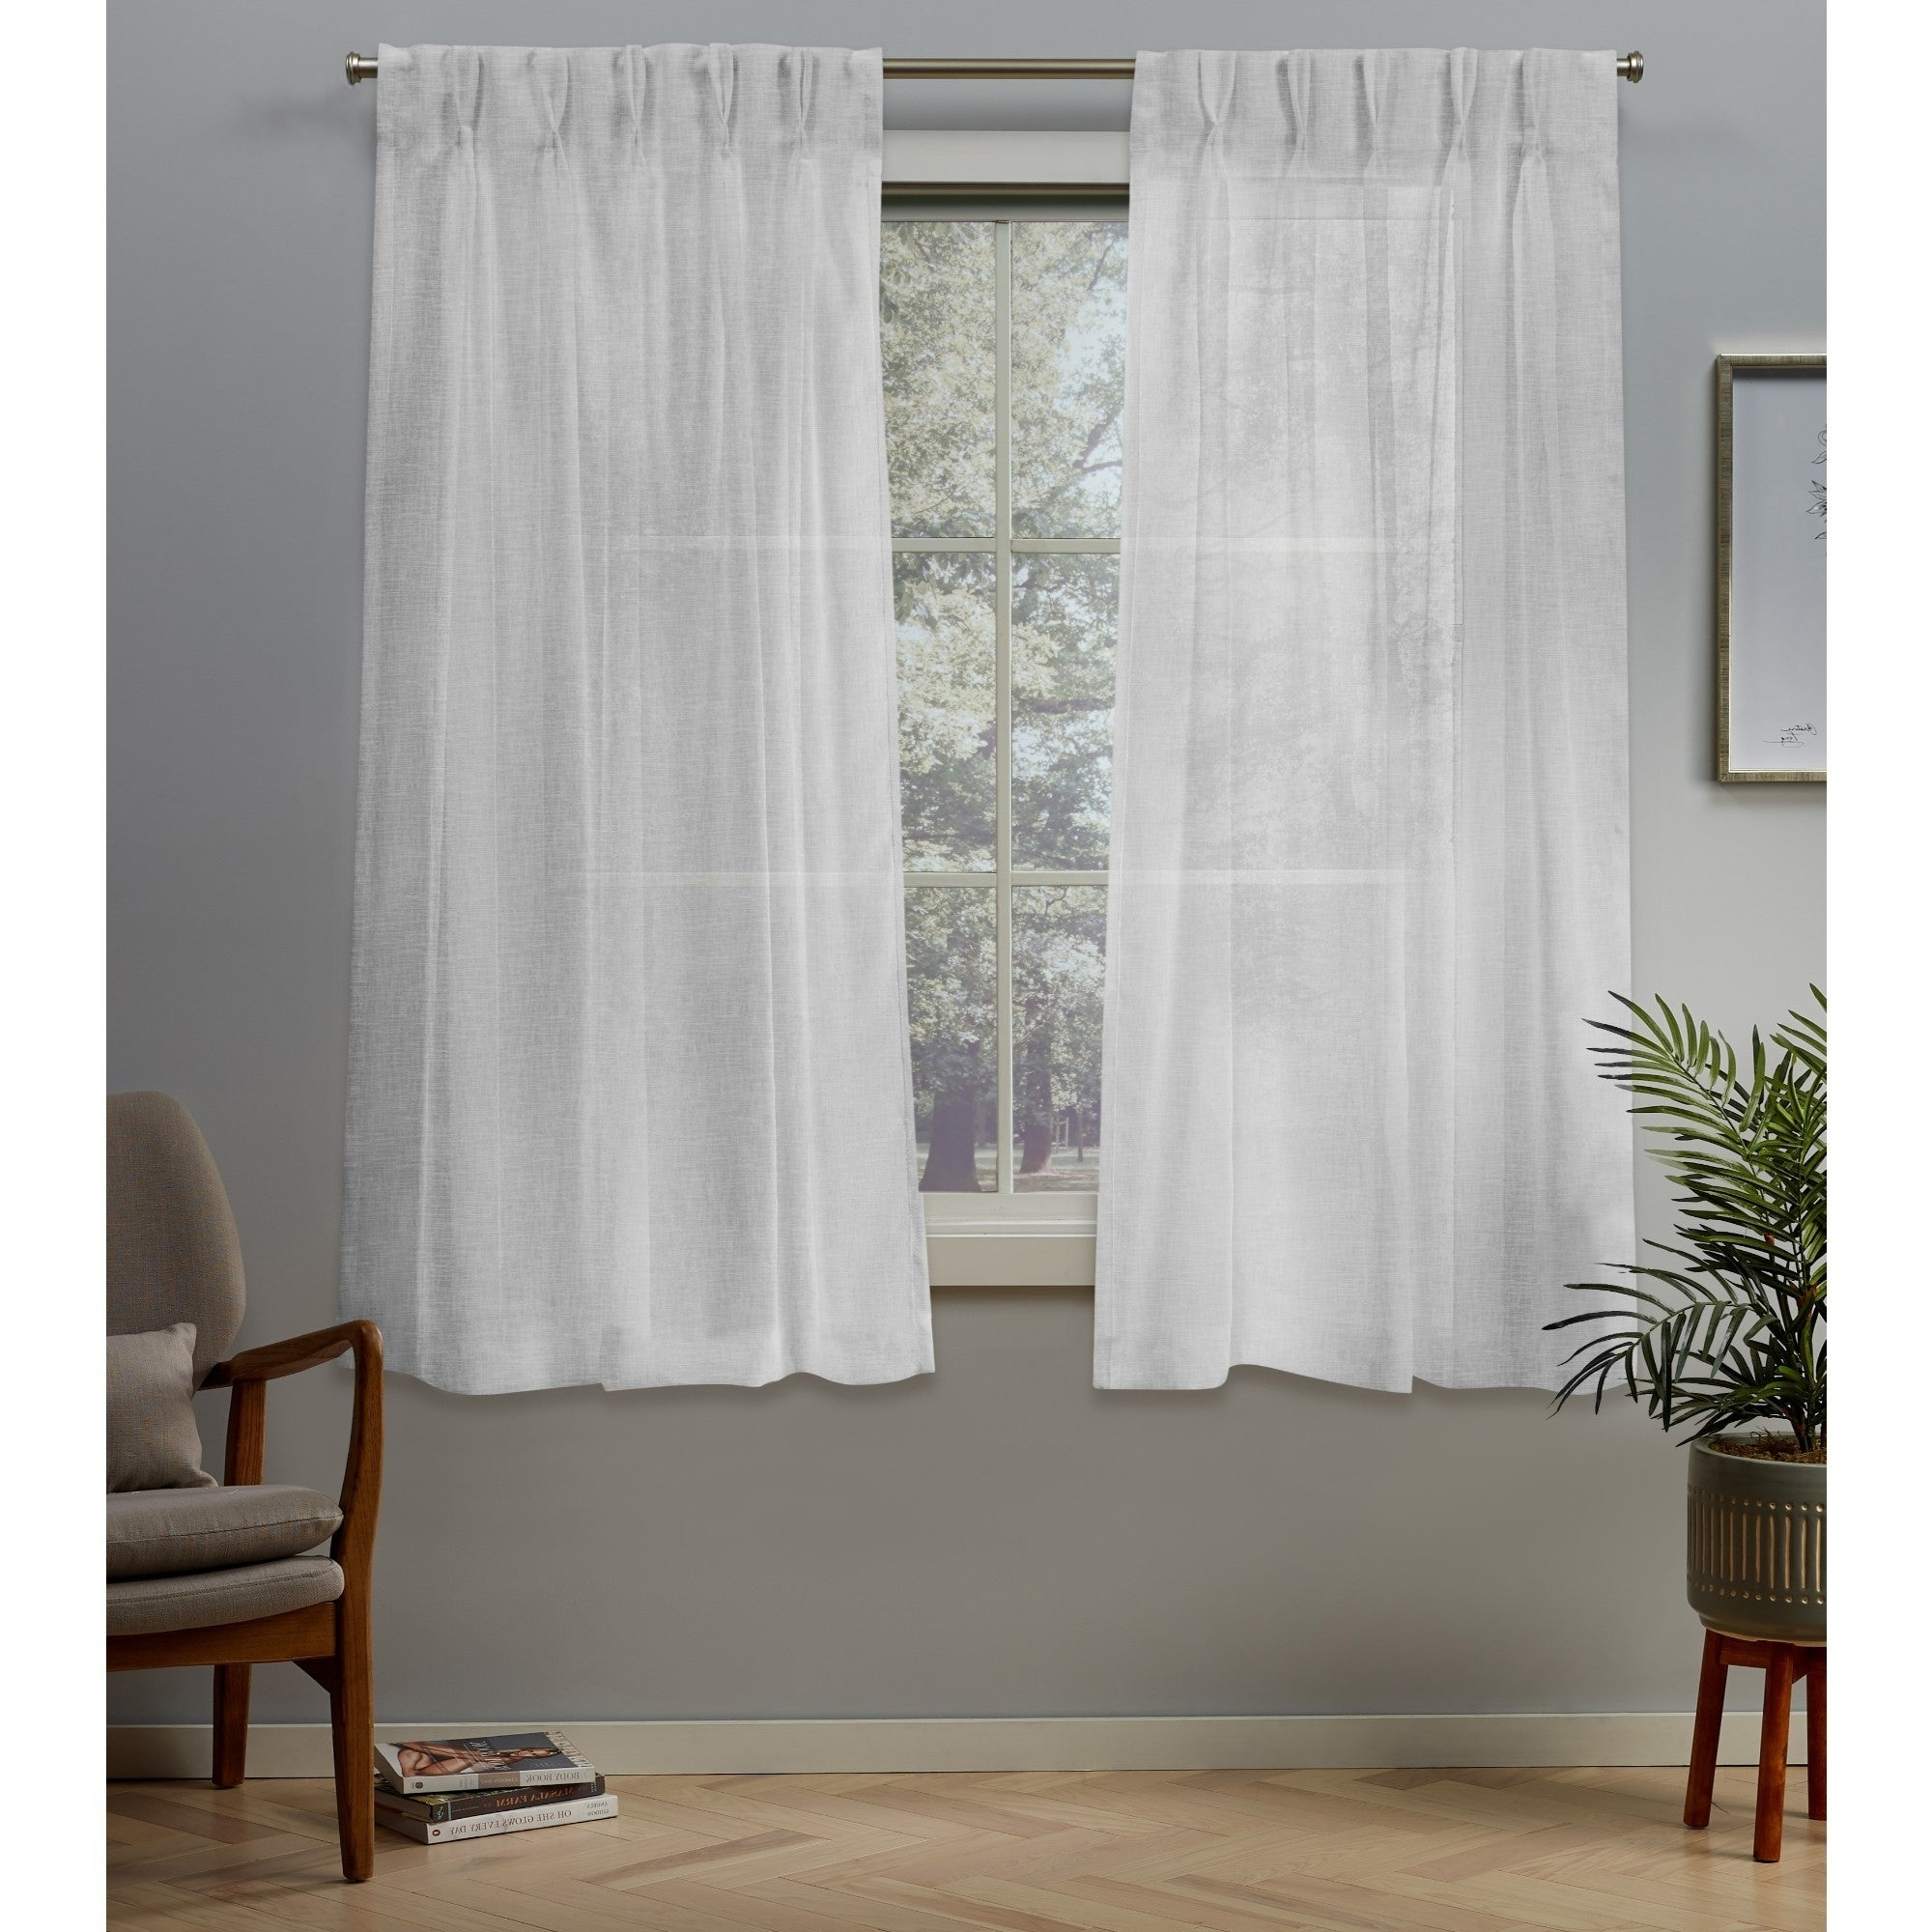 Most Popular Double Pinch Pleat Top Curtain Panel Pairs With Regard To Ati Home Belgian Jacquard Sheer Double Pinch Pleat Top Curtain Panel Pair (View 2 of 20)